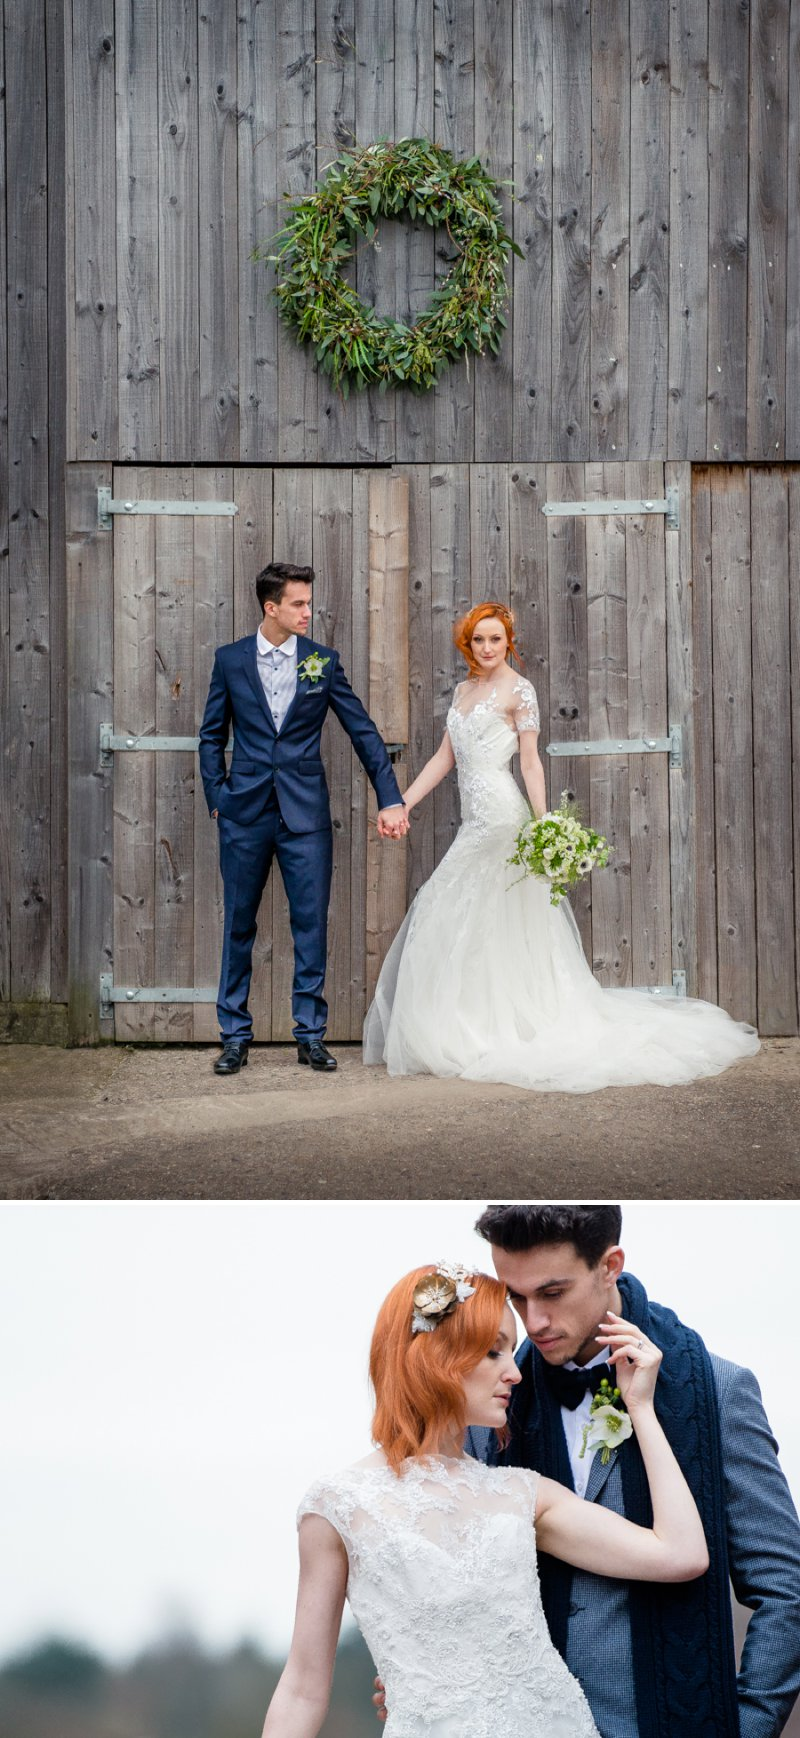 Rustic Glamour Inspired Shoot At York Maze With An Apple Green Colour Scheme Lots of Green Foliage And White Flowers With Images By Dominic Wright Photography 11